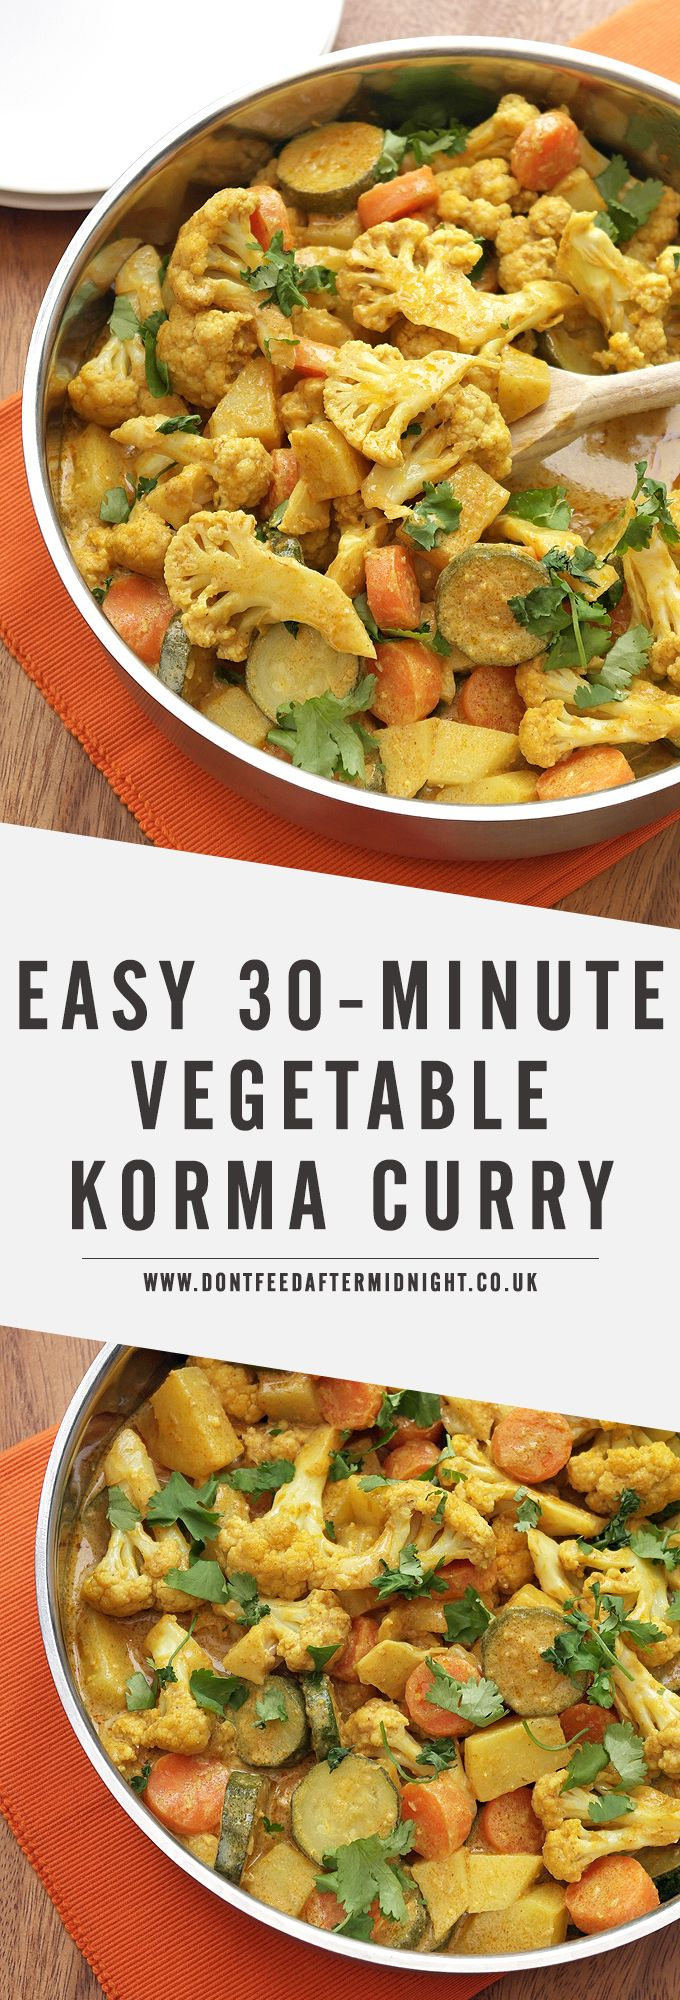 Easy 30-minute vegetable korma curry